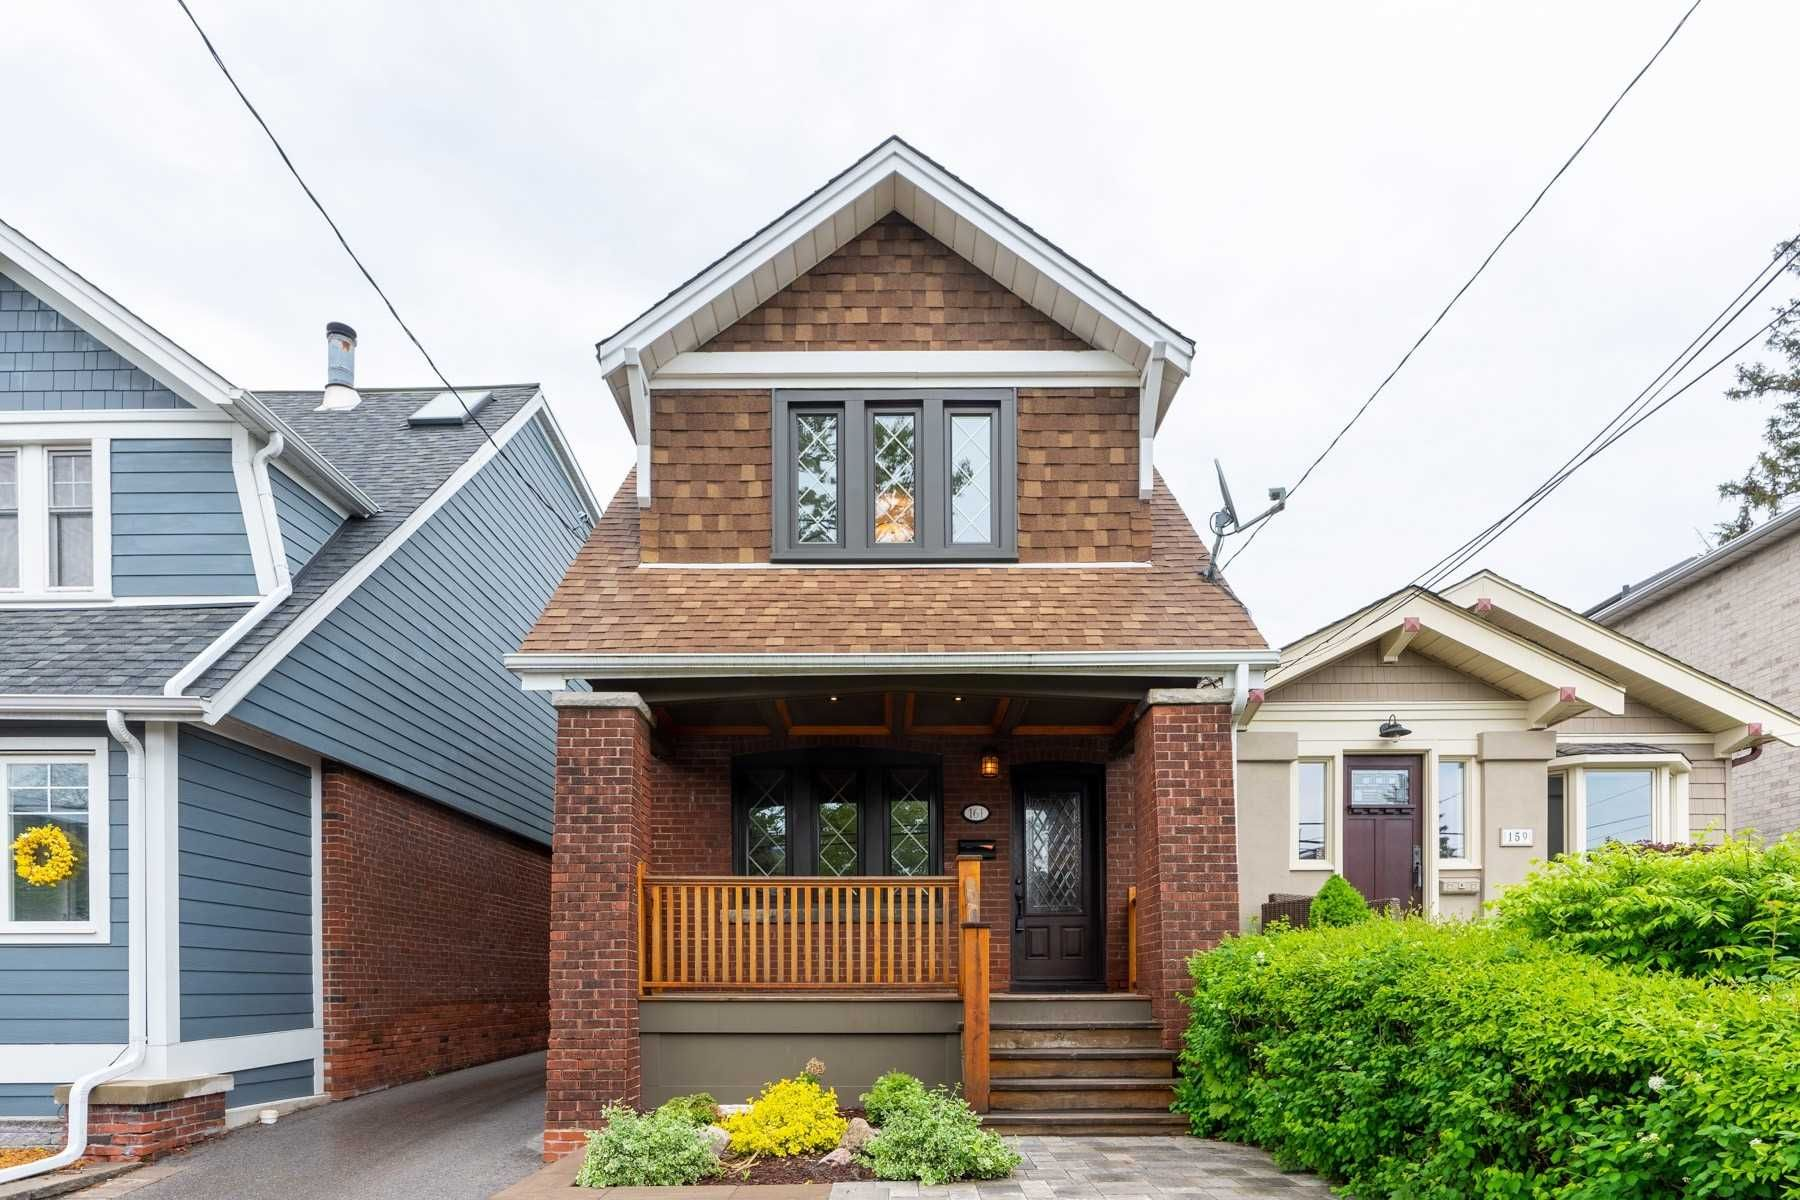 Main Photo: 161 Courcelette Road in Toronto: Birchcliffe-Cliffside House (2-Storey) for lease (Toronto E06)  : MLS®# E4774892